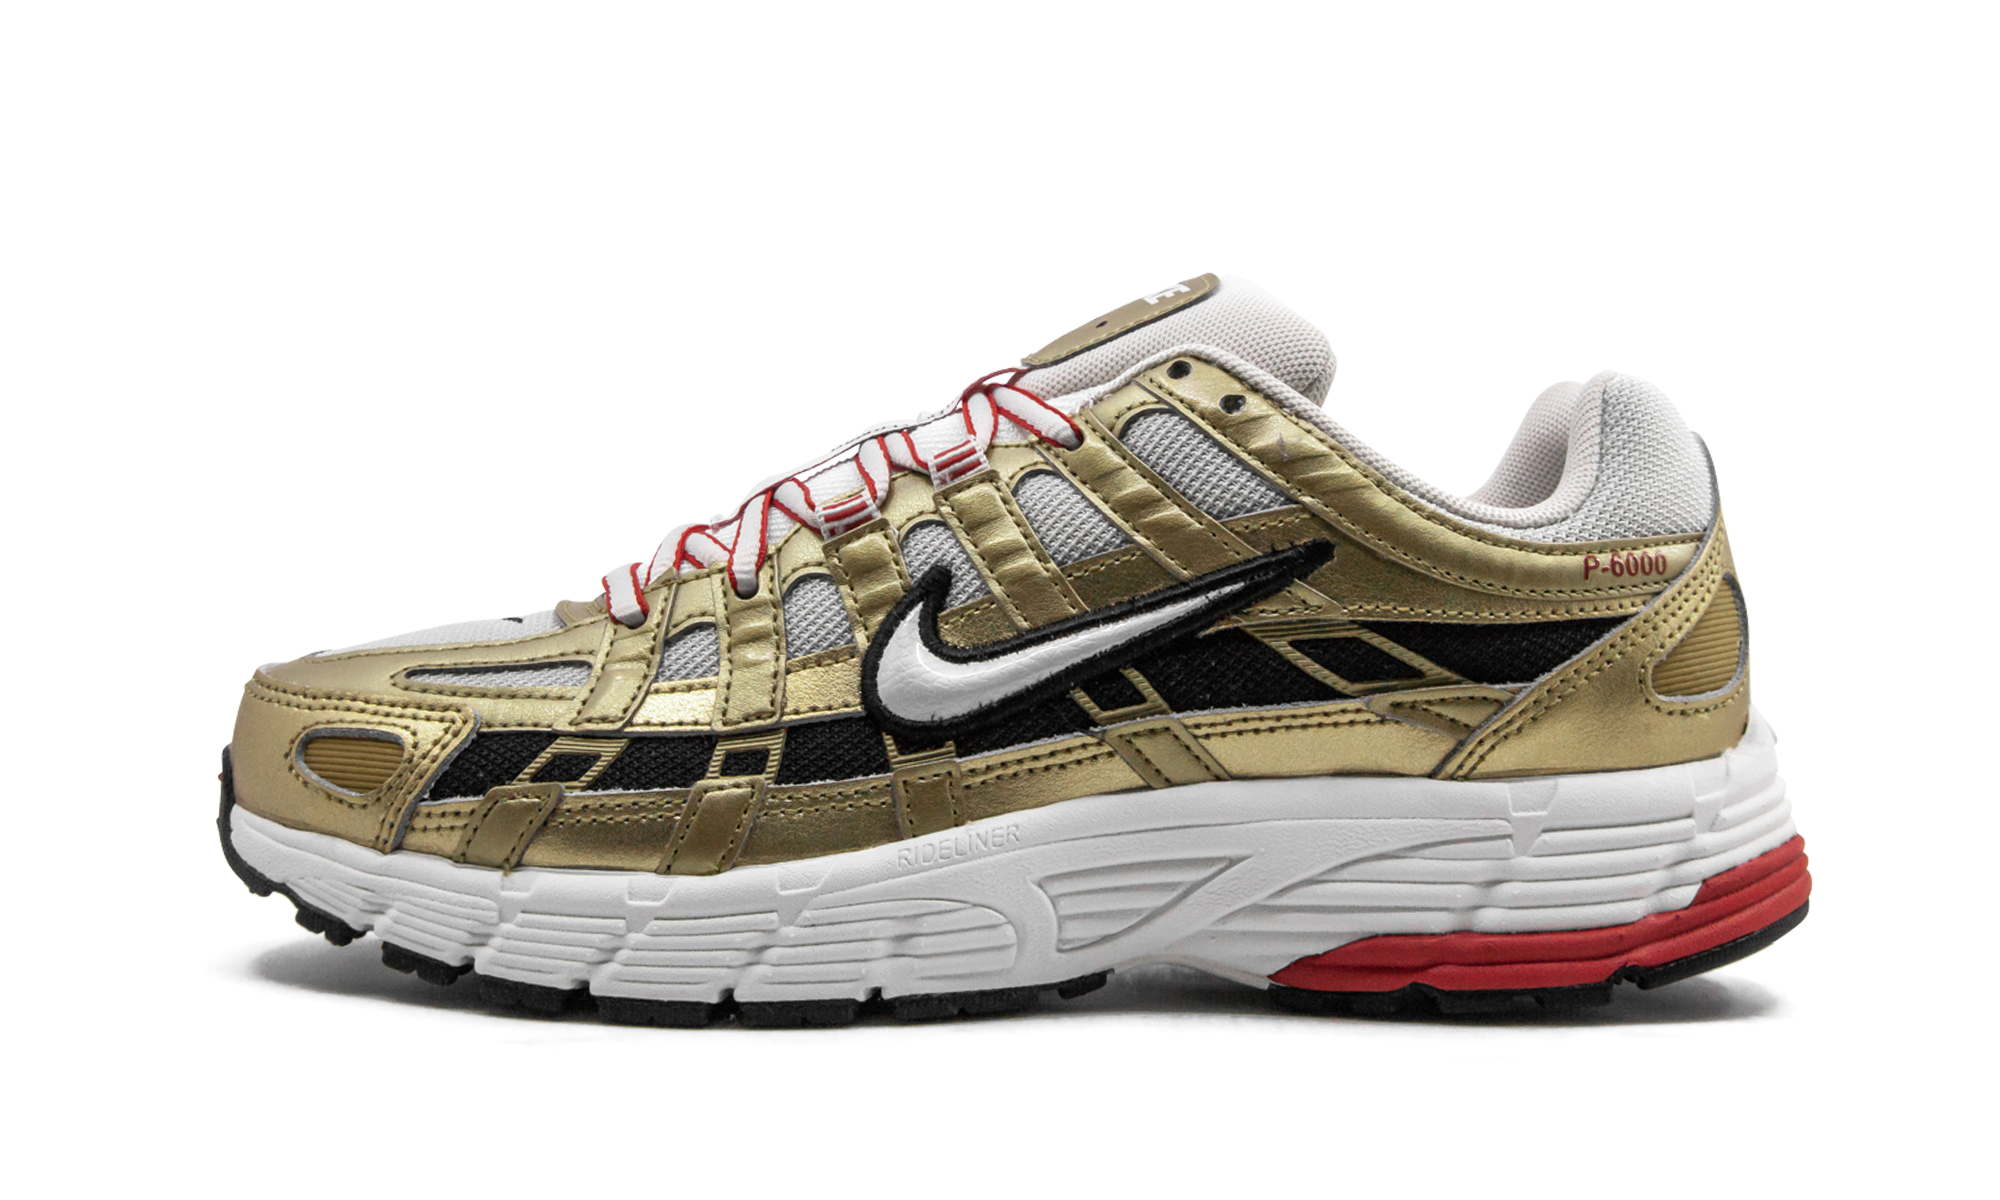 Nike P-6000 Metallic Gold - BV1021-007